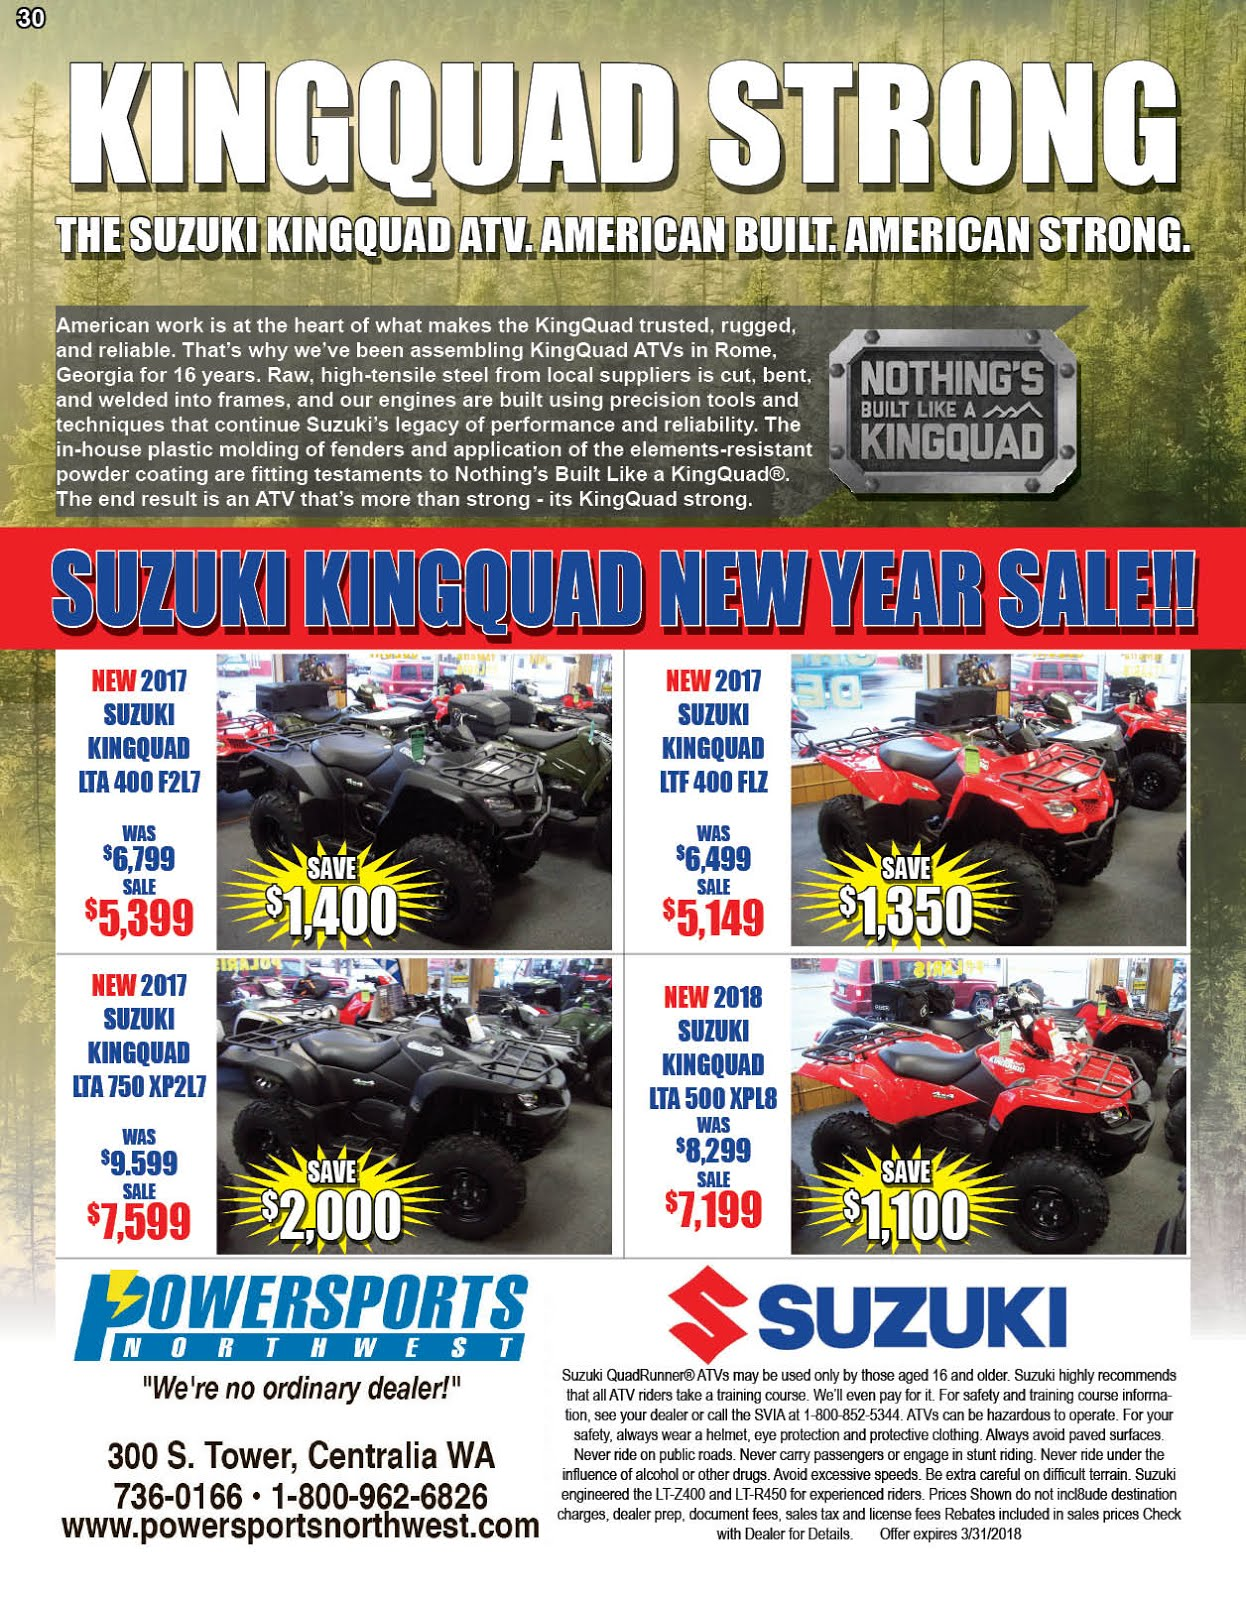 """Powersports Northwest"" is KINGQUAD STRONG!!"